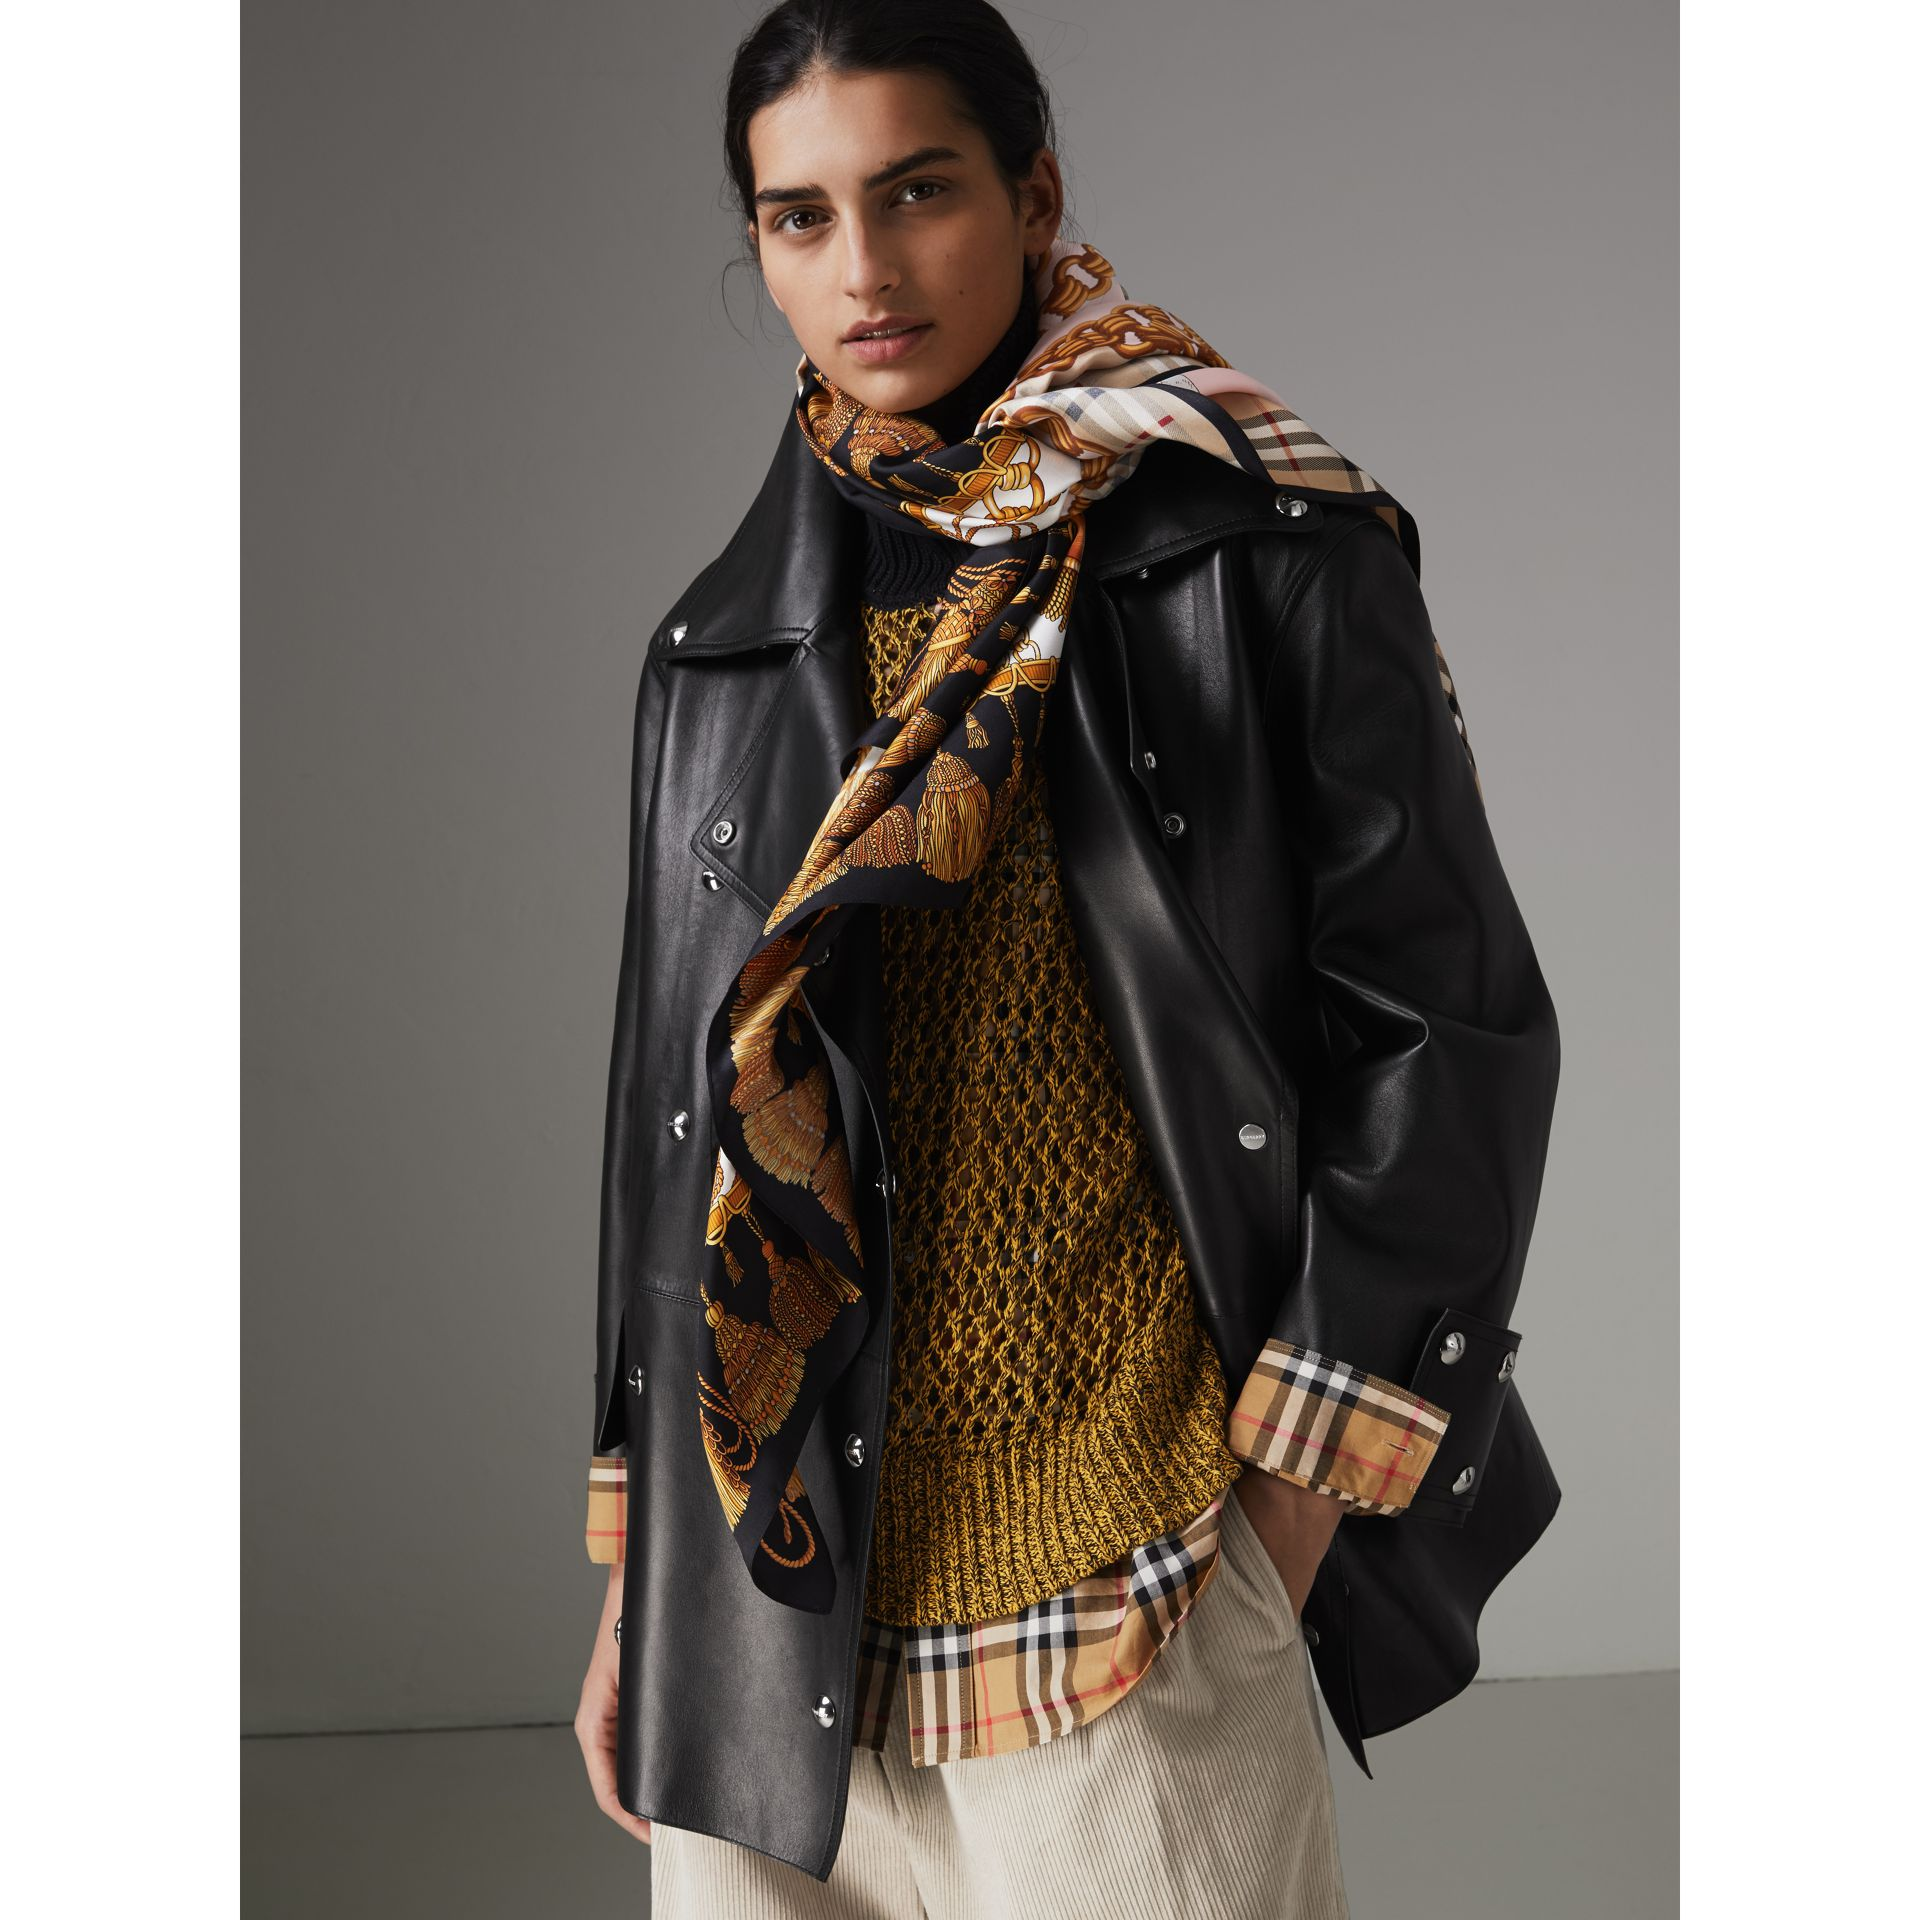 Archive Scarf Print Silk Scarf in Gold | Burberry - gallery image 4